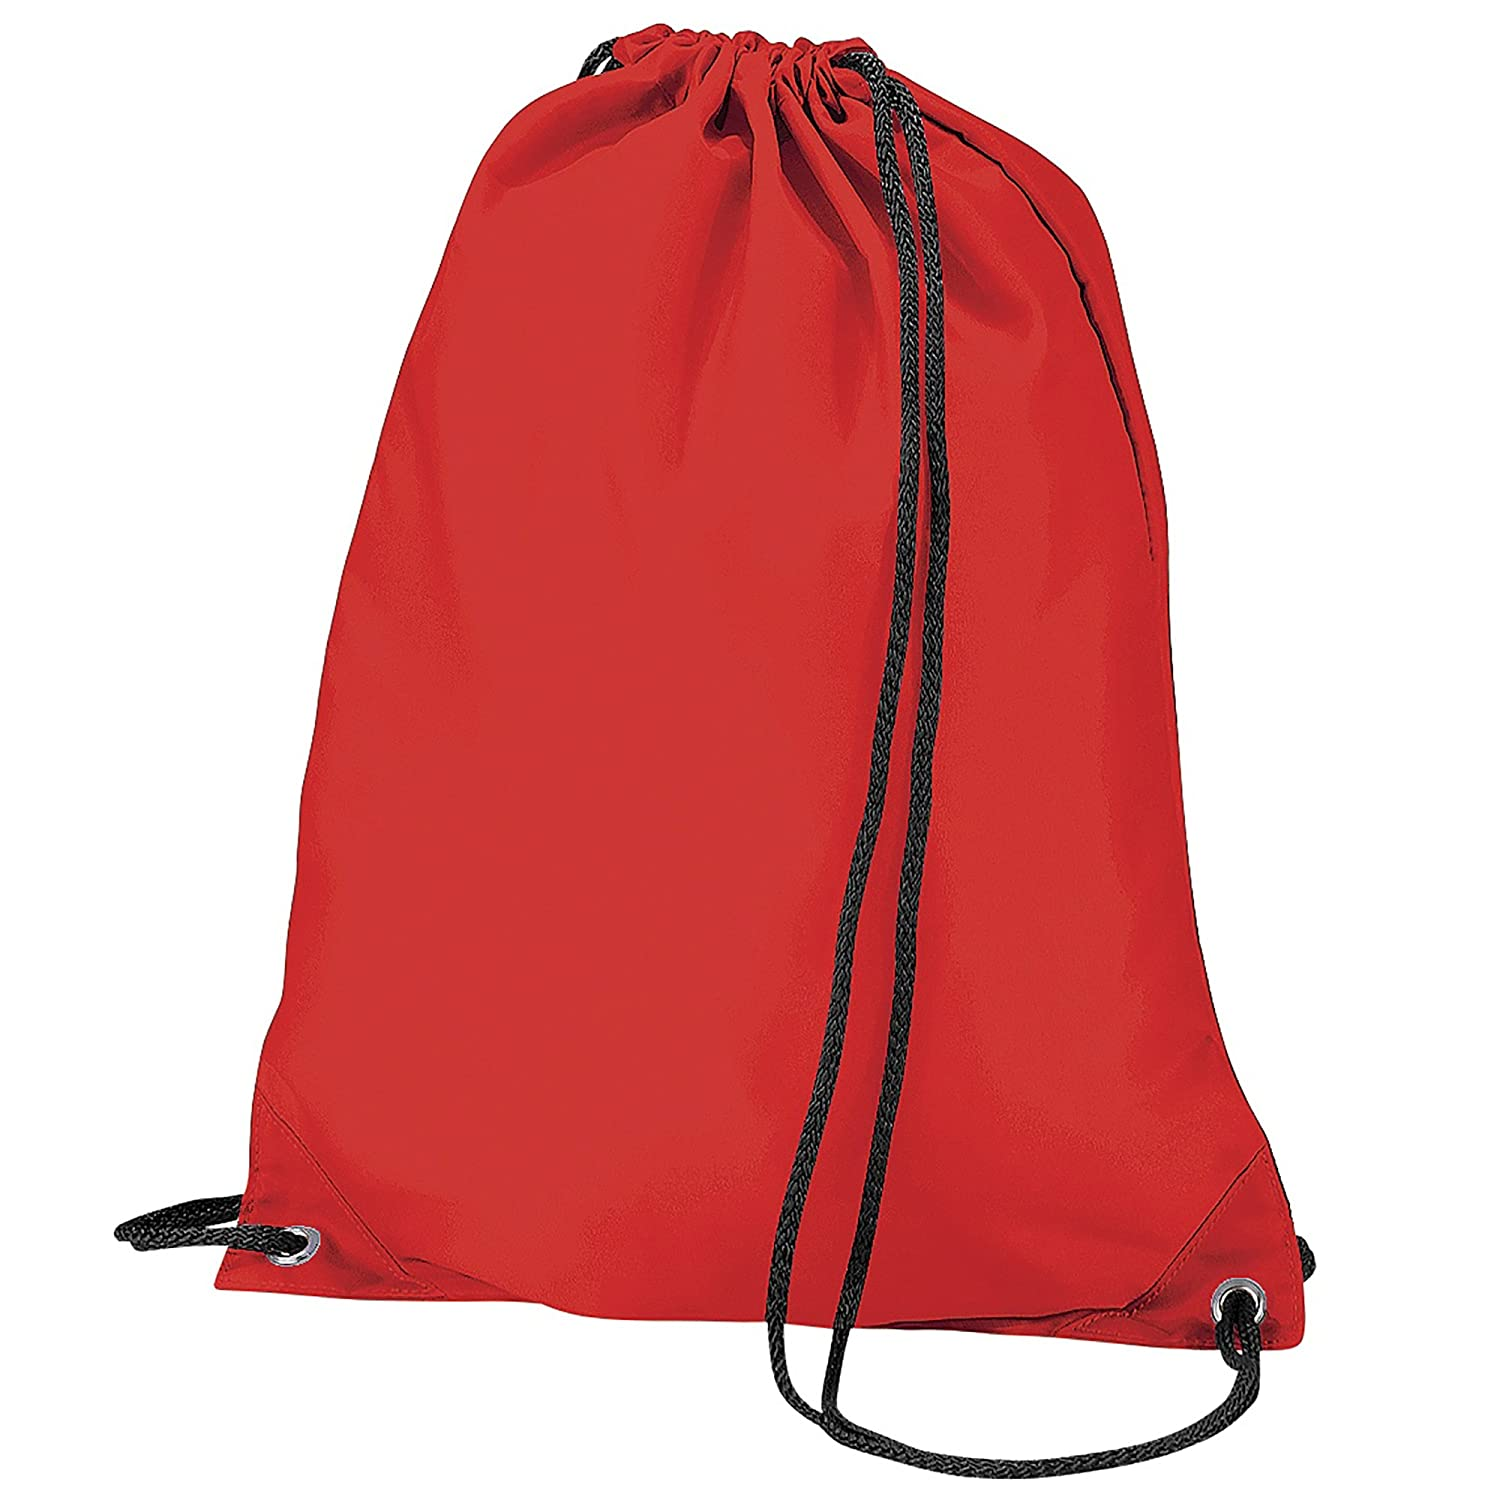 BagBase Budget Water Resistant Sports Gymsac Drawstring Bag (11 Litres) (One Size) (Orange) UTBC2538_5